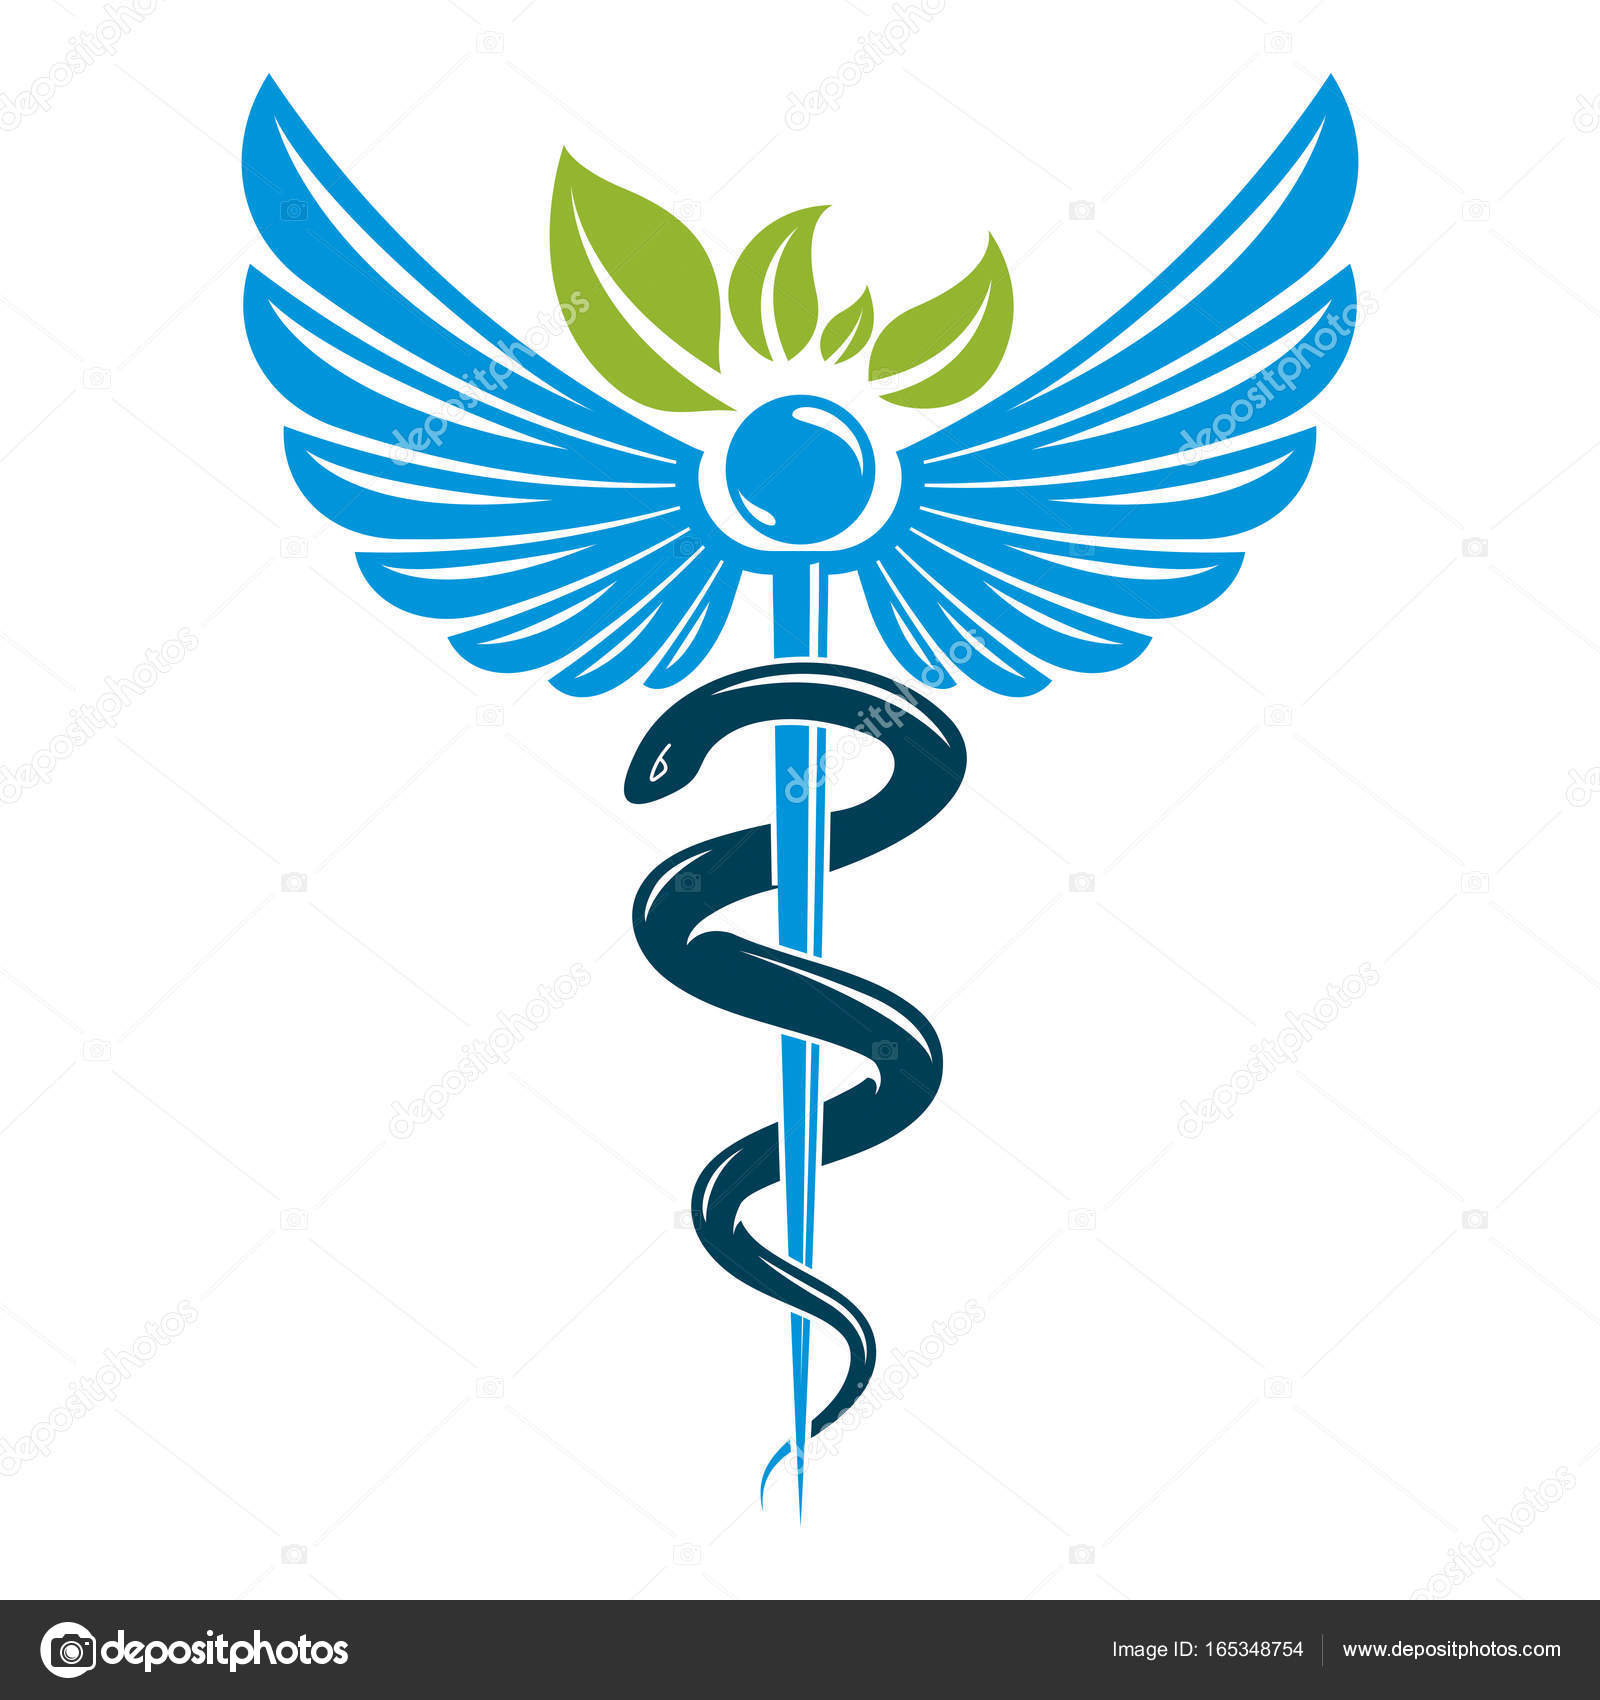 Caduceus symbol composed with poisonous snakes and bird wings caduceus symbol composed with poisonous snakes and bird wings stock vector biocorpaavc Image collections